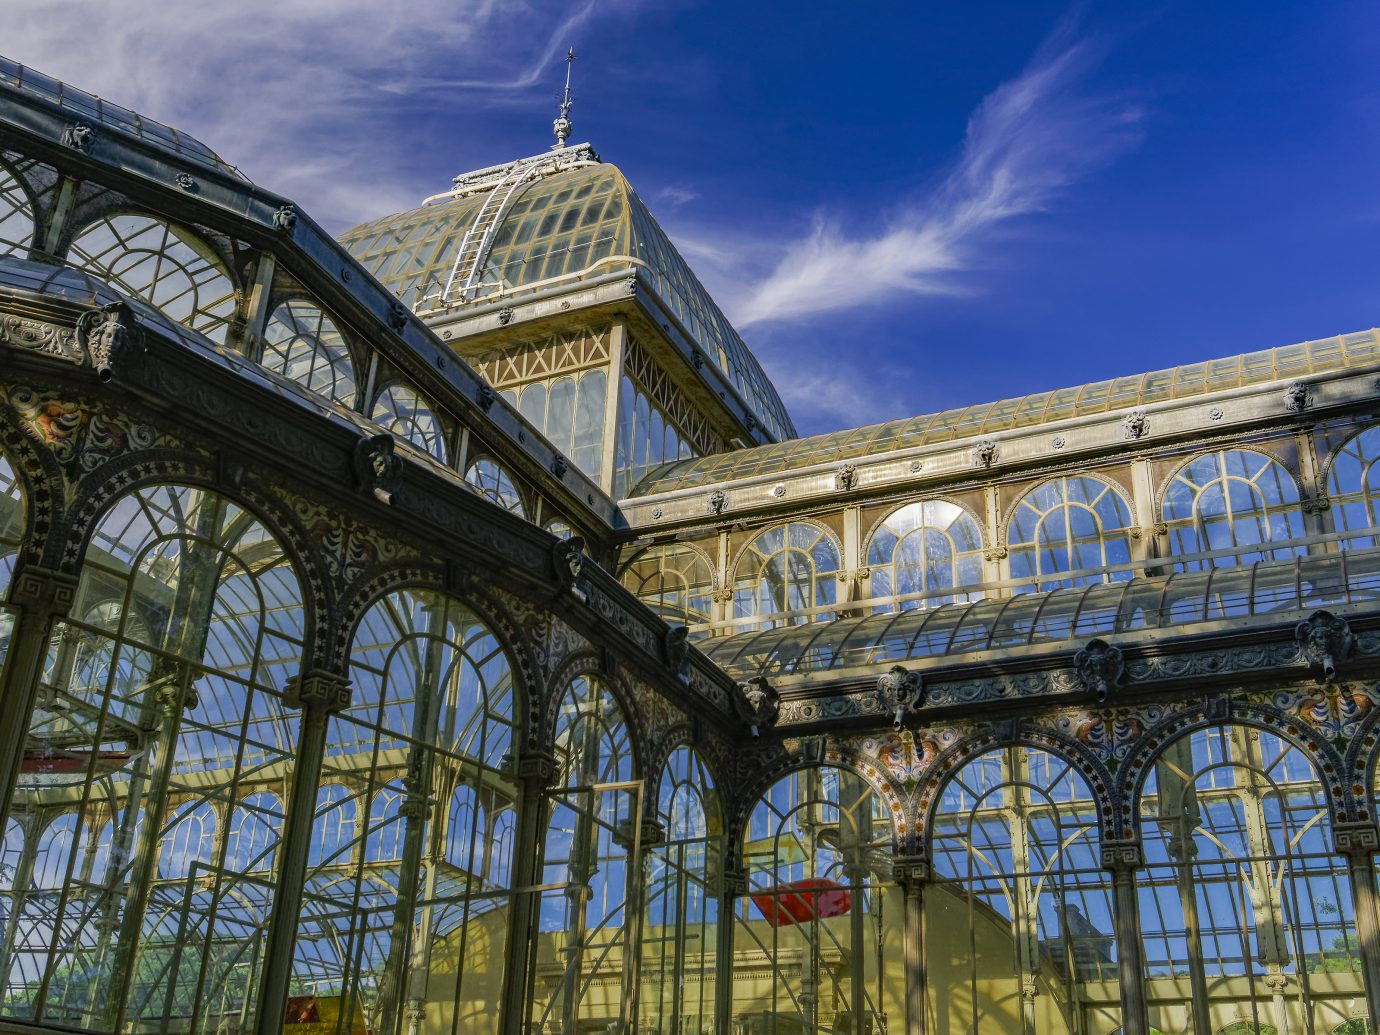 Day view of 1887 glass and metal structure of crystal palace at Park Retiro.